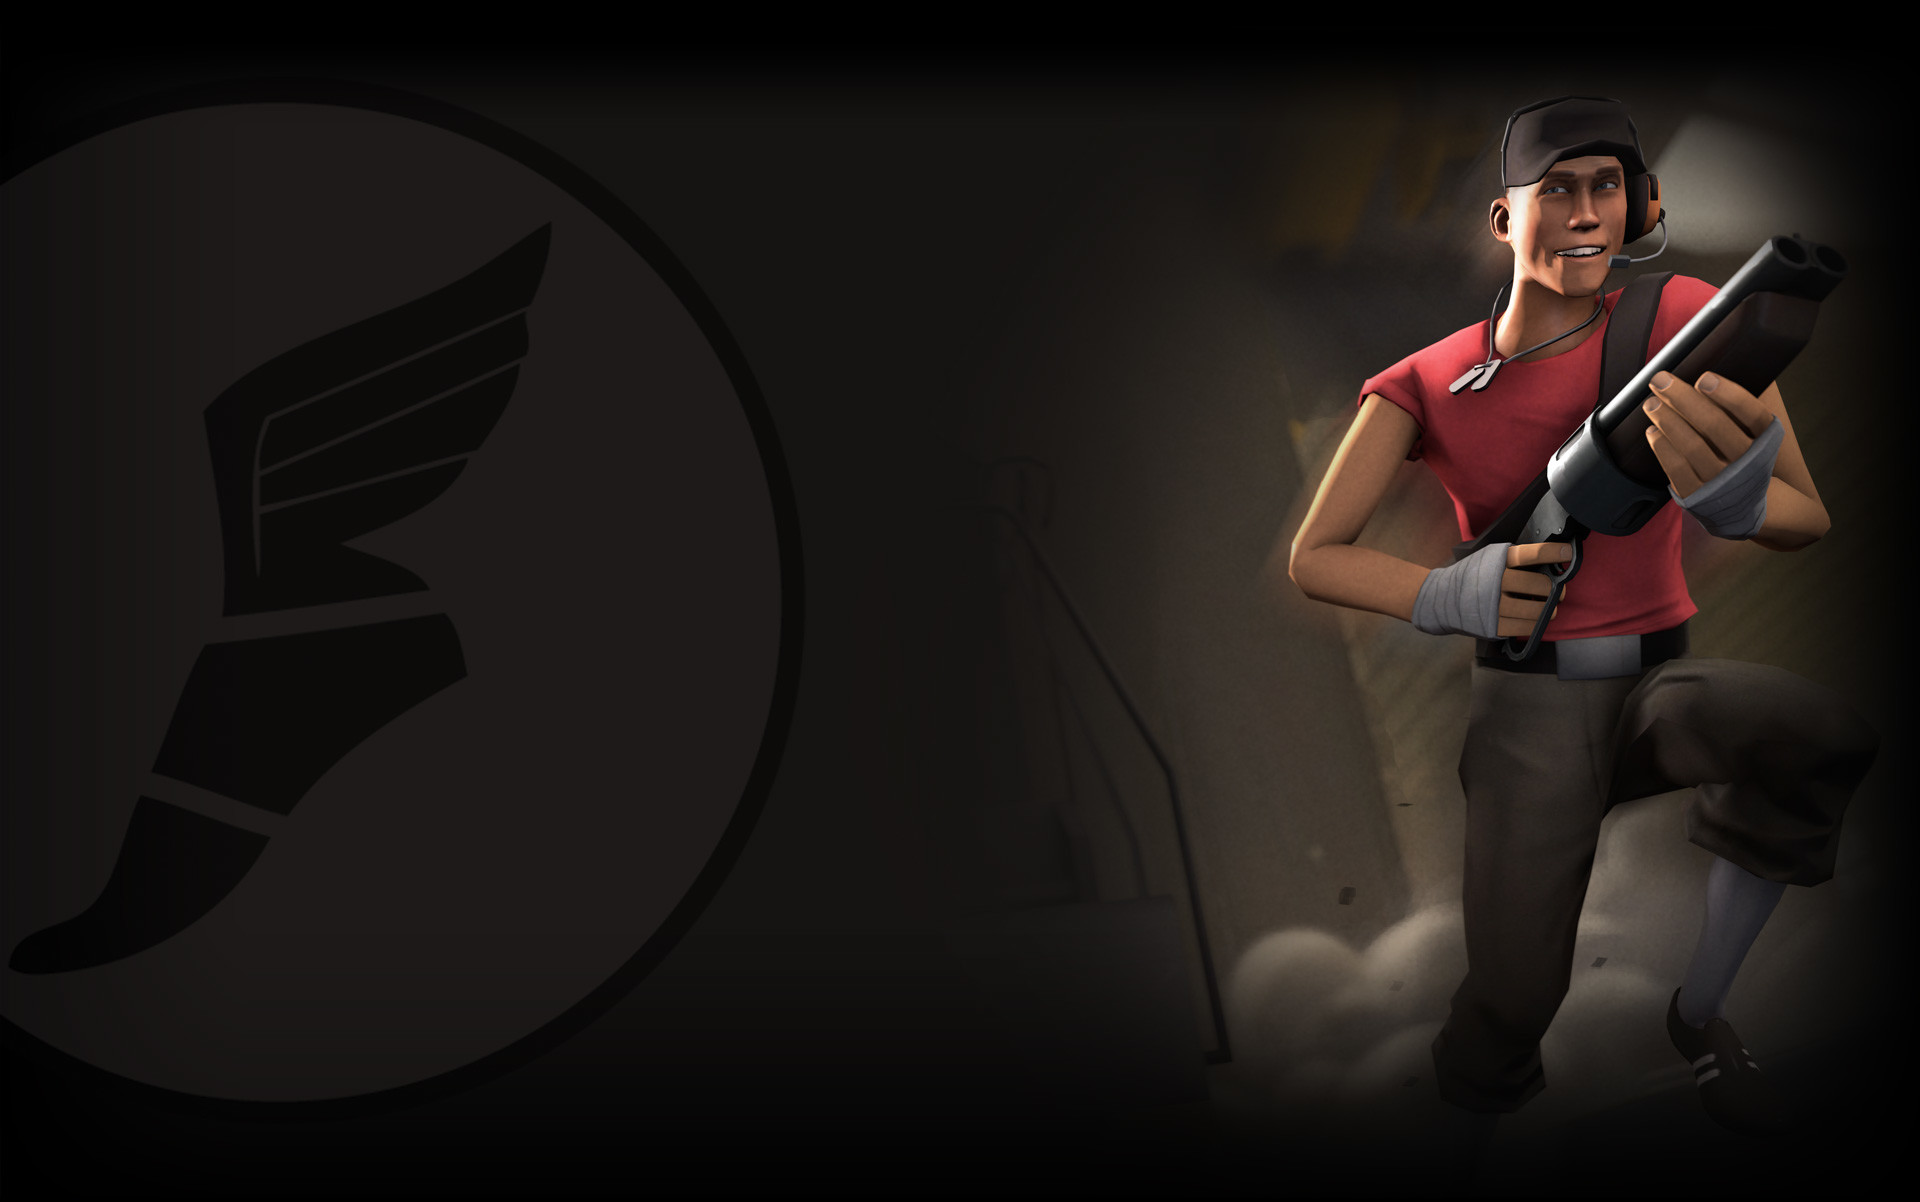 1920x1202 Team Fortress 2 Profile Background. View Full Size